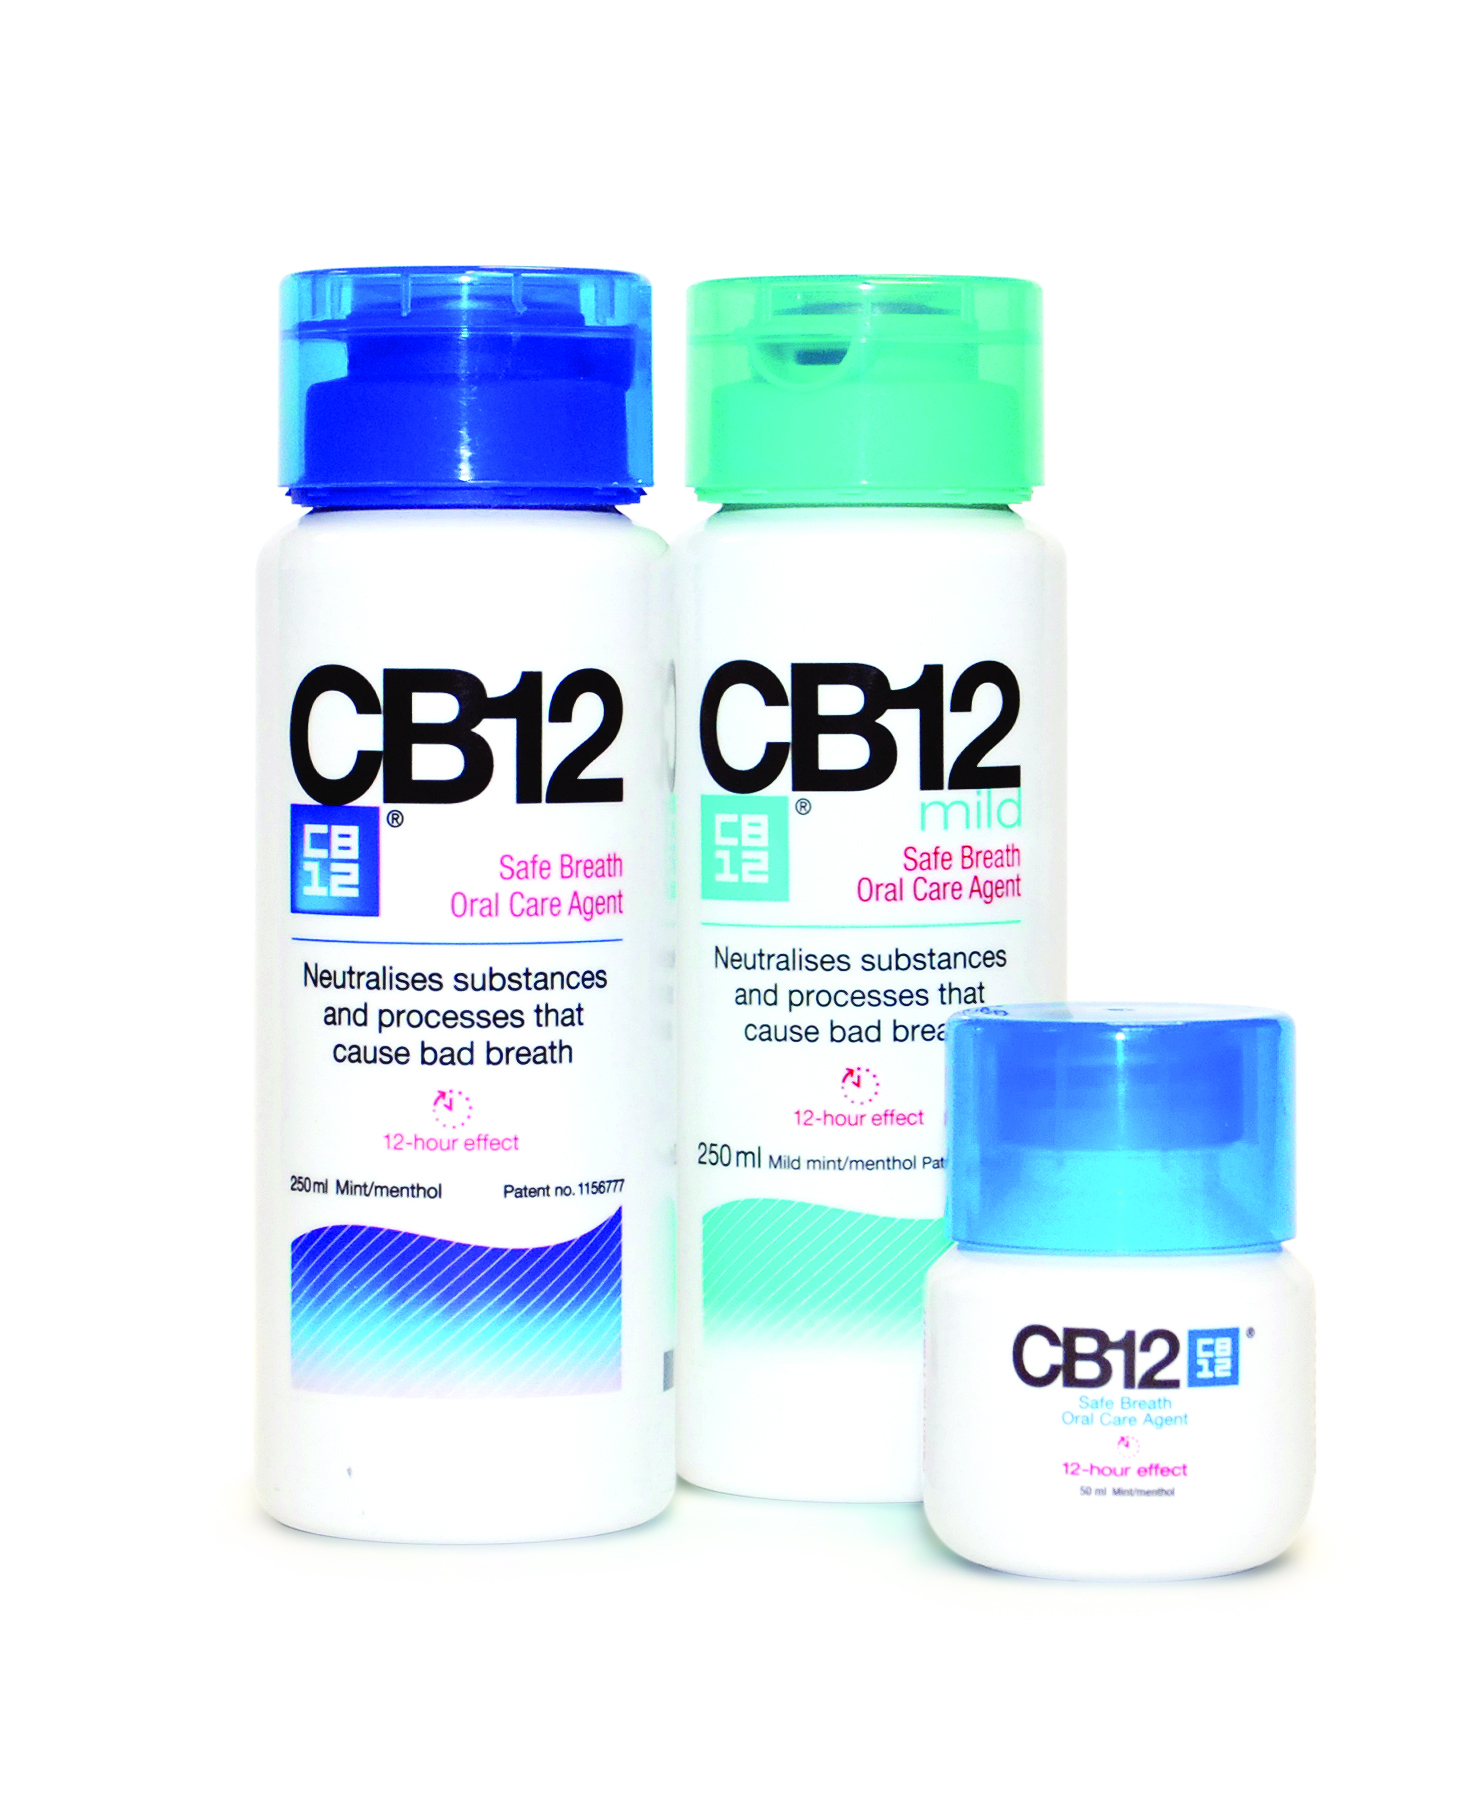 CB12 Products Image 2013 (1)